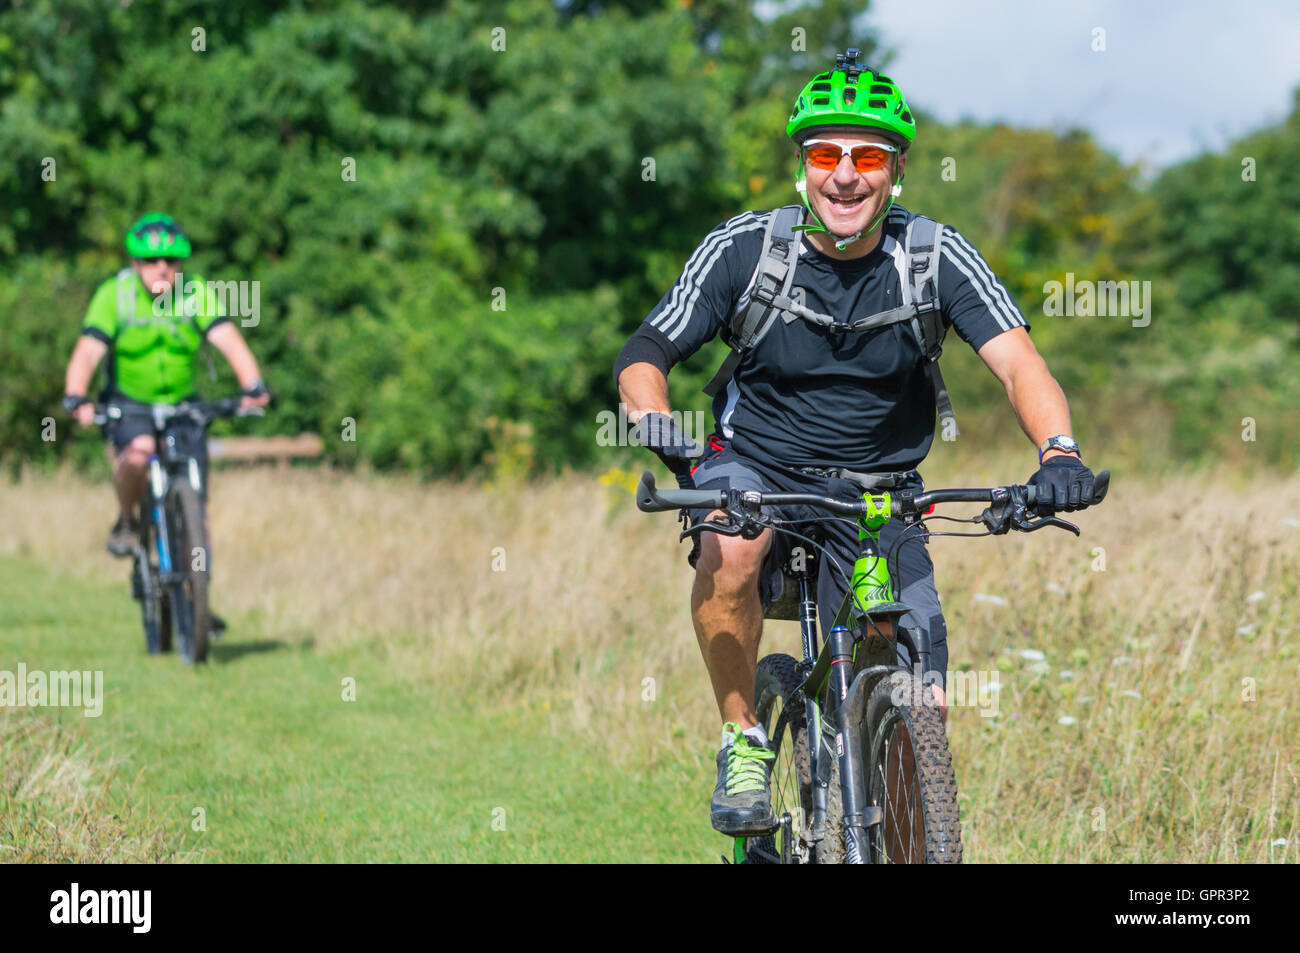 Cyclists wearing helmets in the countryside enjoying the ride on the South Downs in West Sussex, England, UK. - Stock Image